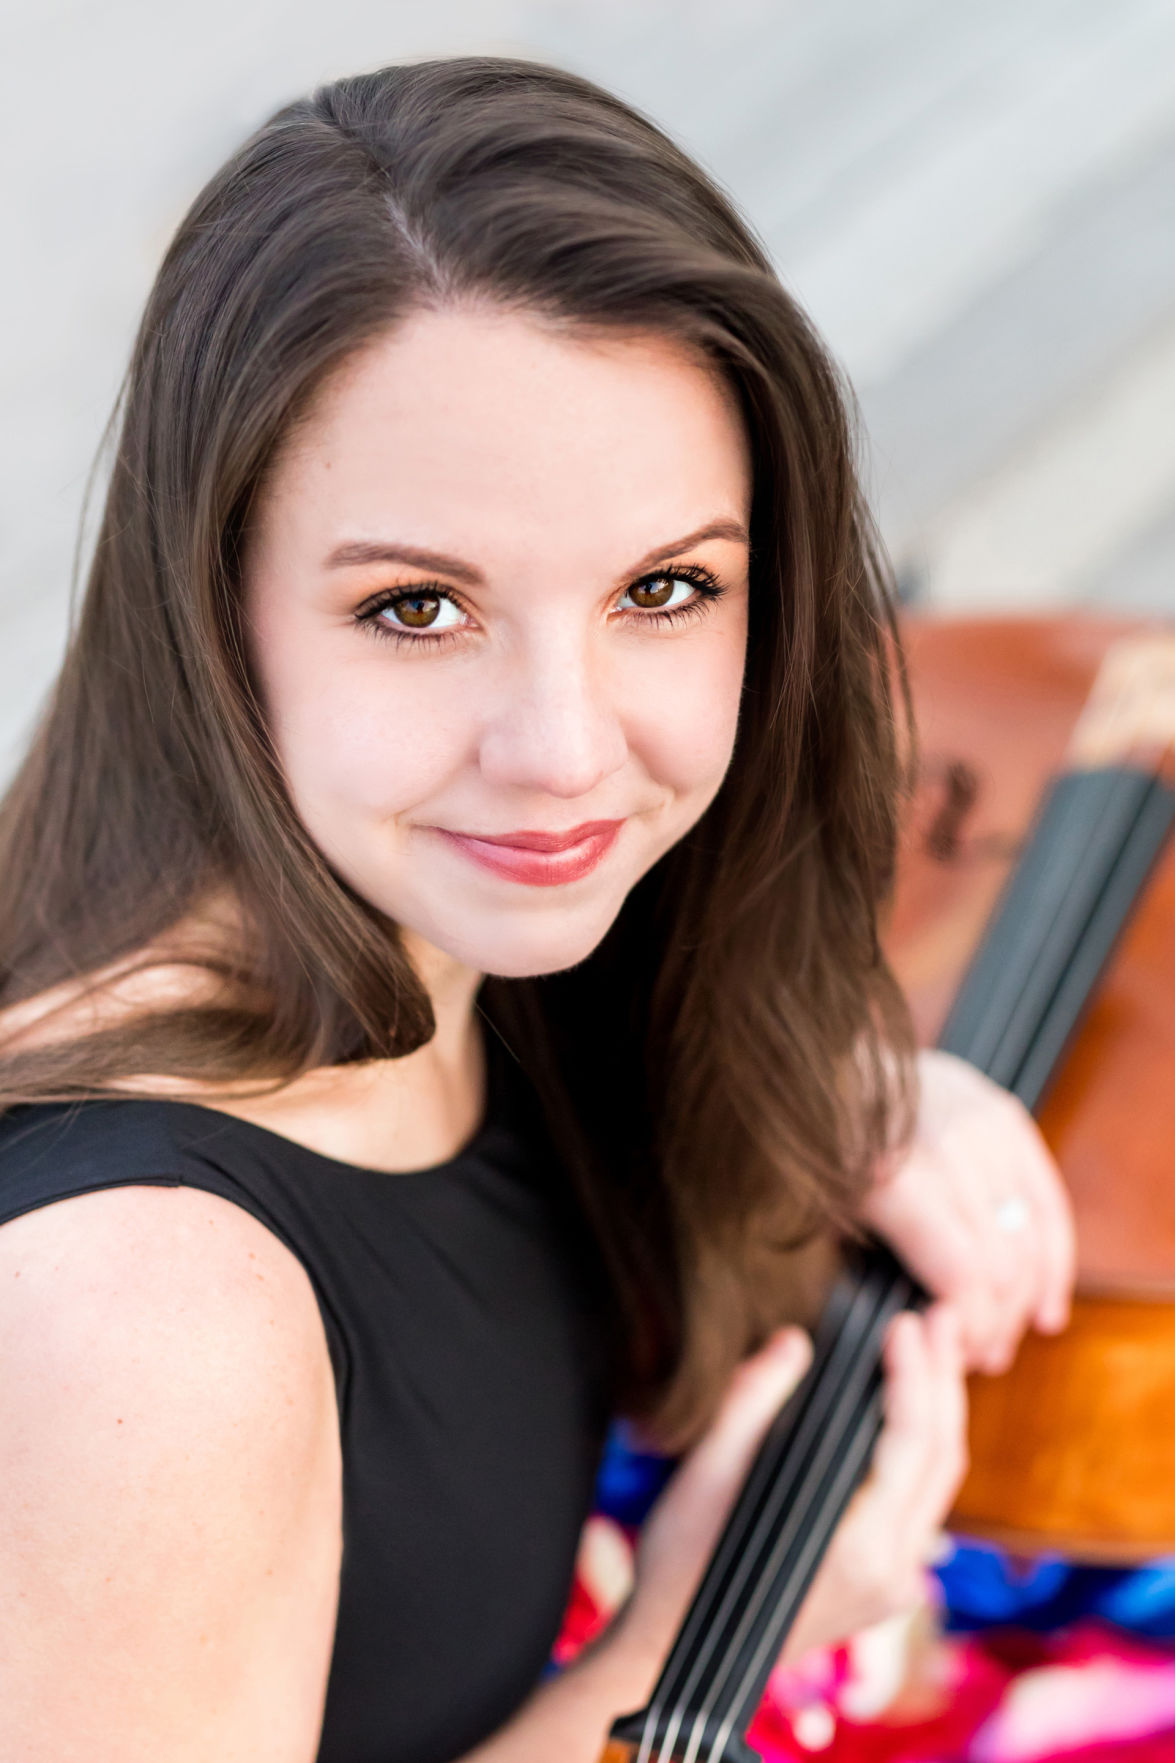 Cellist Emily Taubl